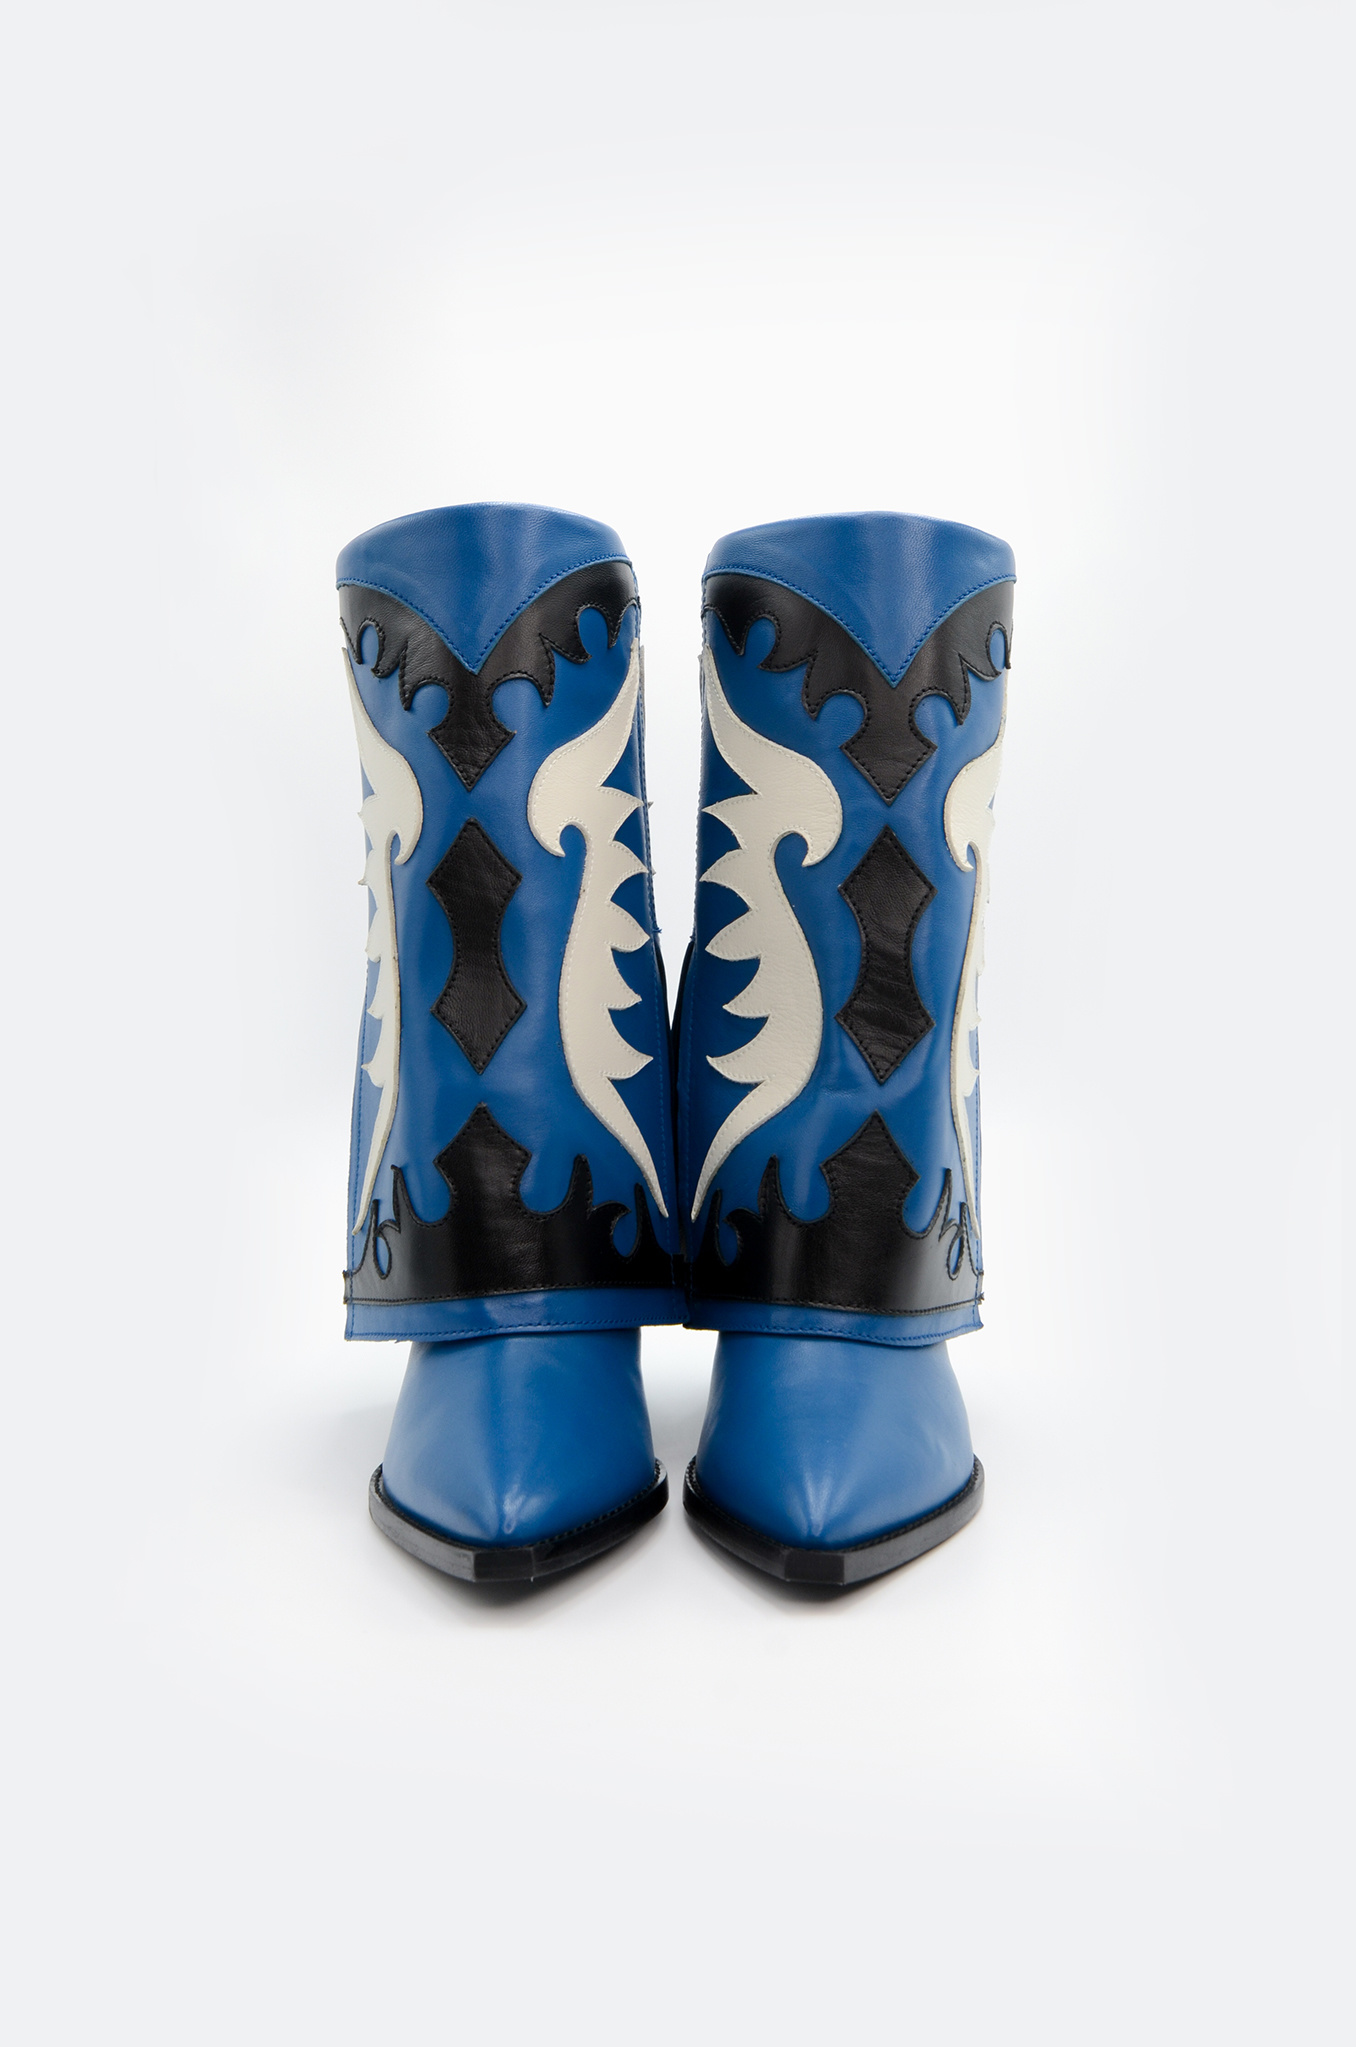 WESTERN STYLE BOOT IN BLUE-3